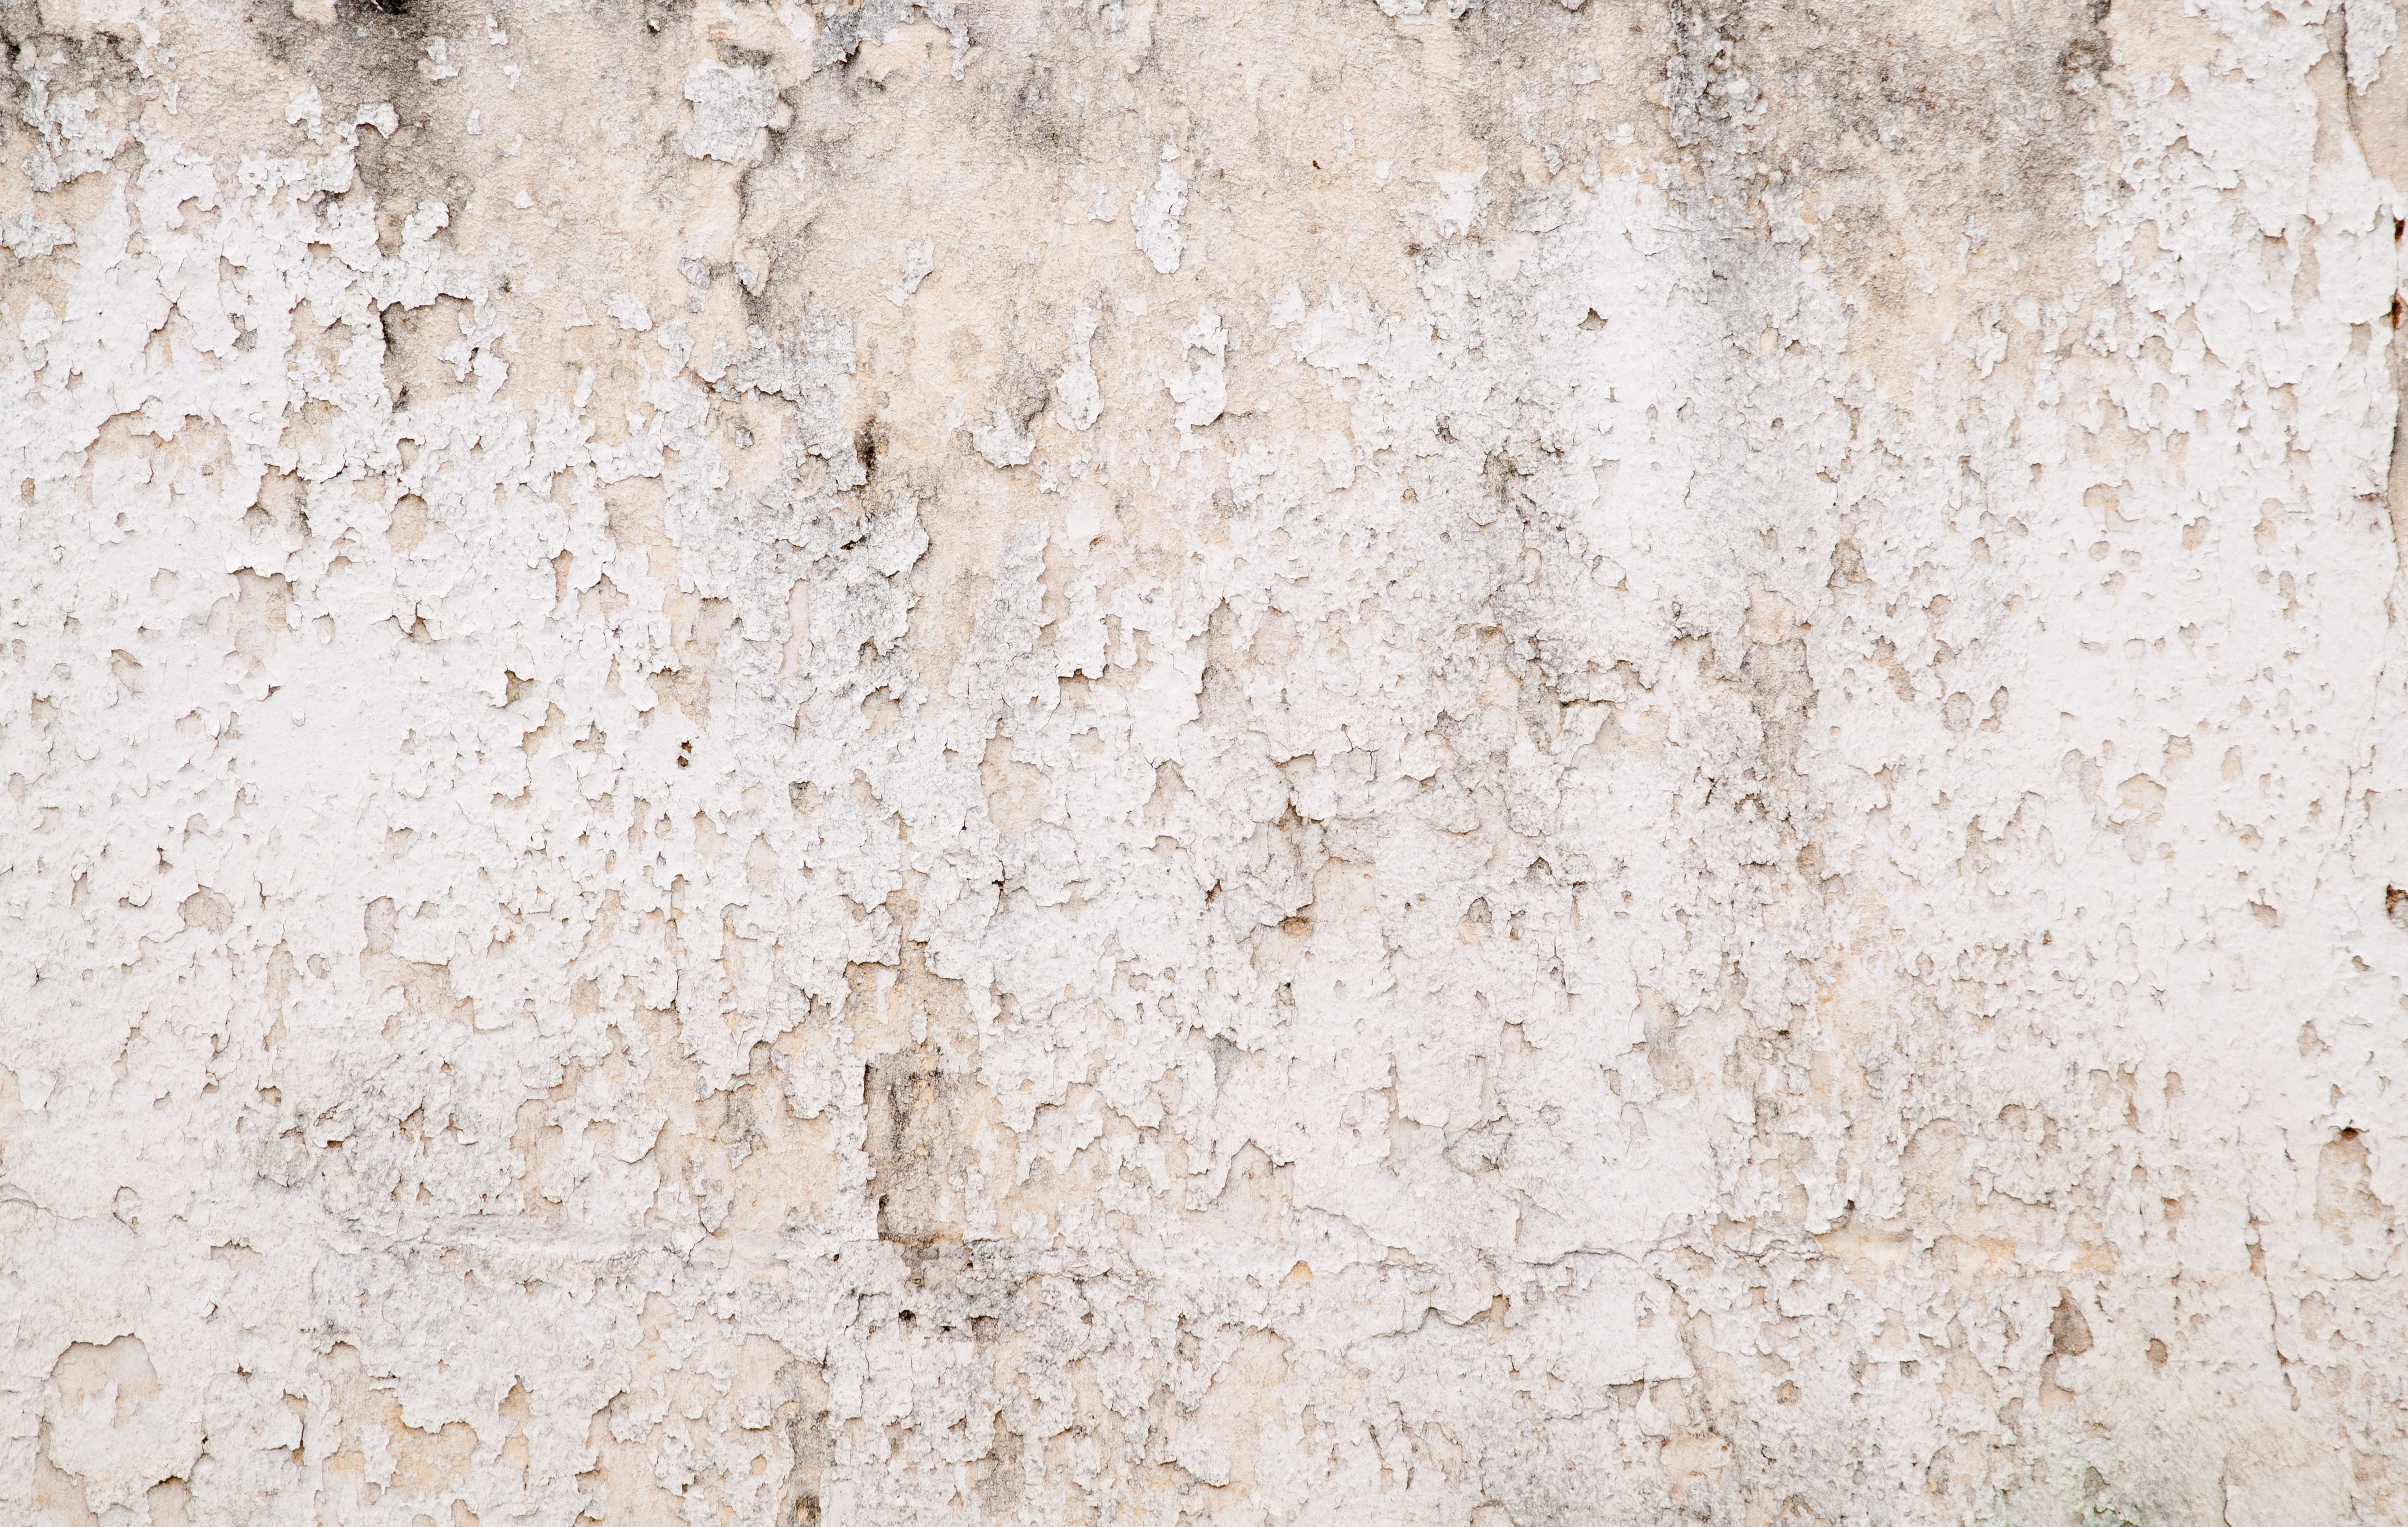 Grunge Wall Texture With Peeling Paint Free By Patternpictures